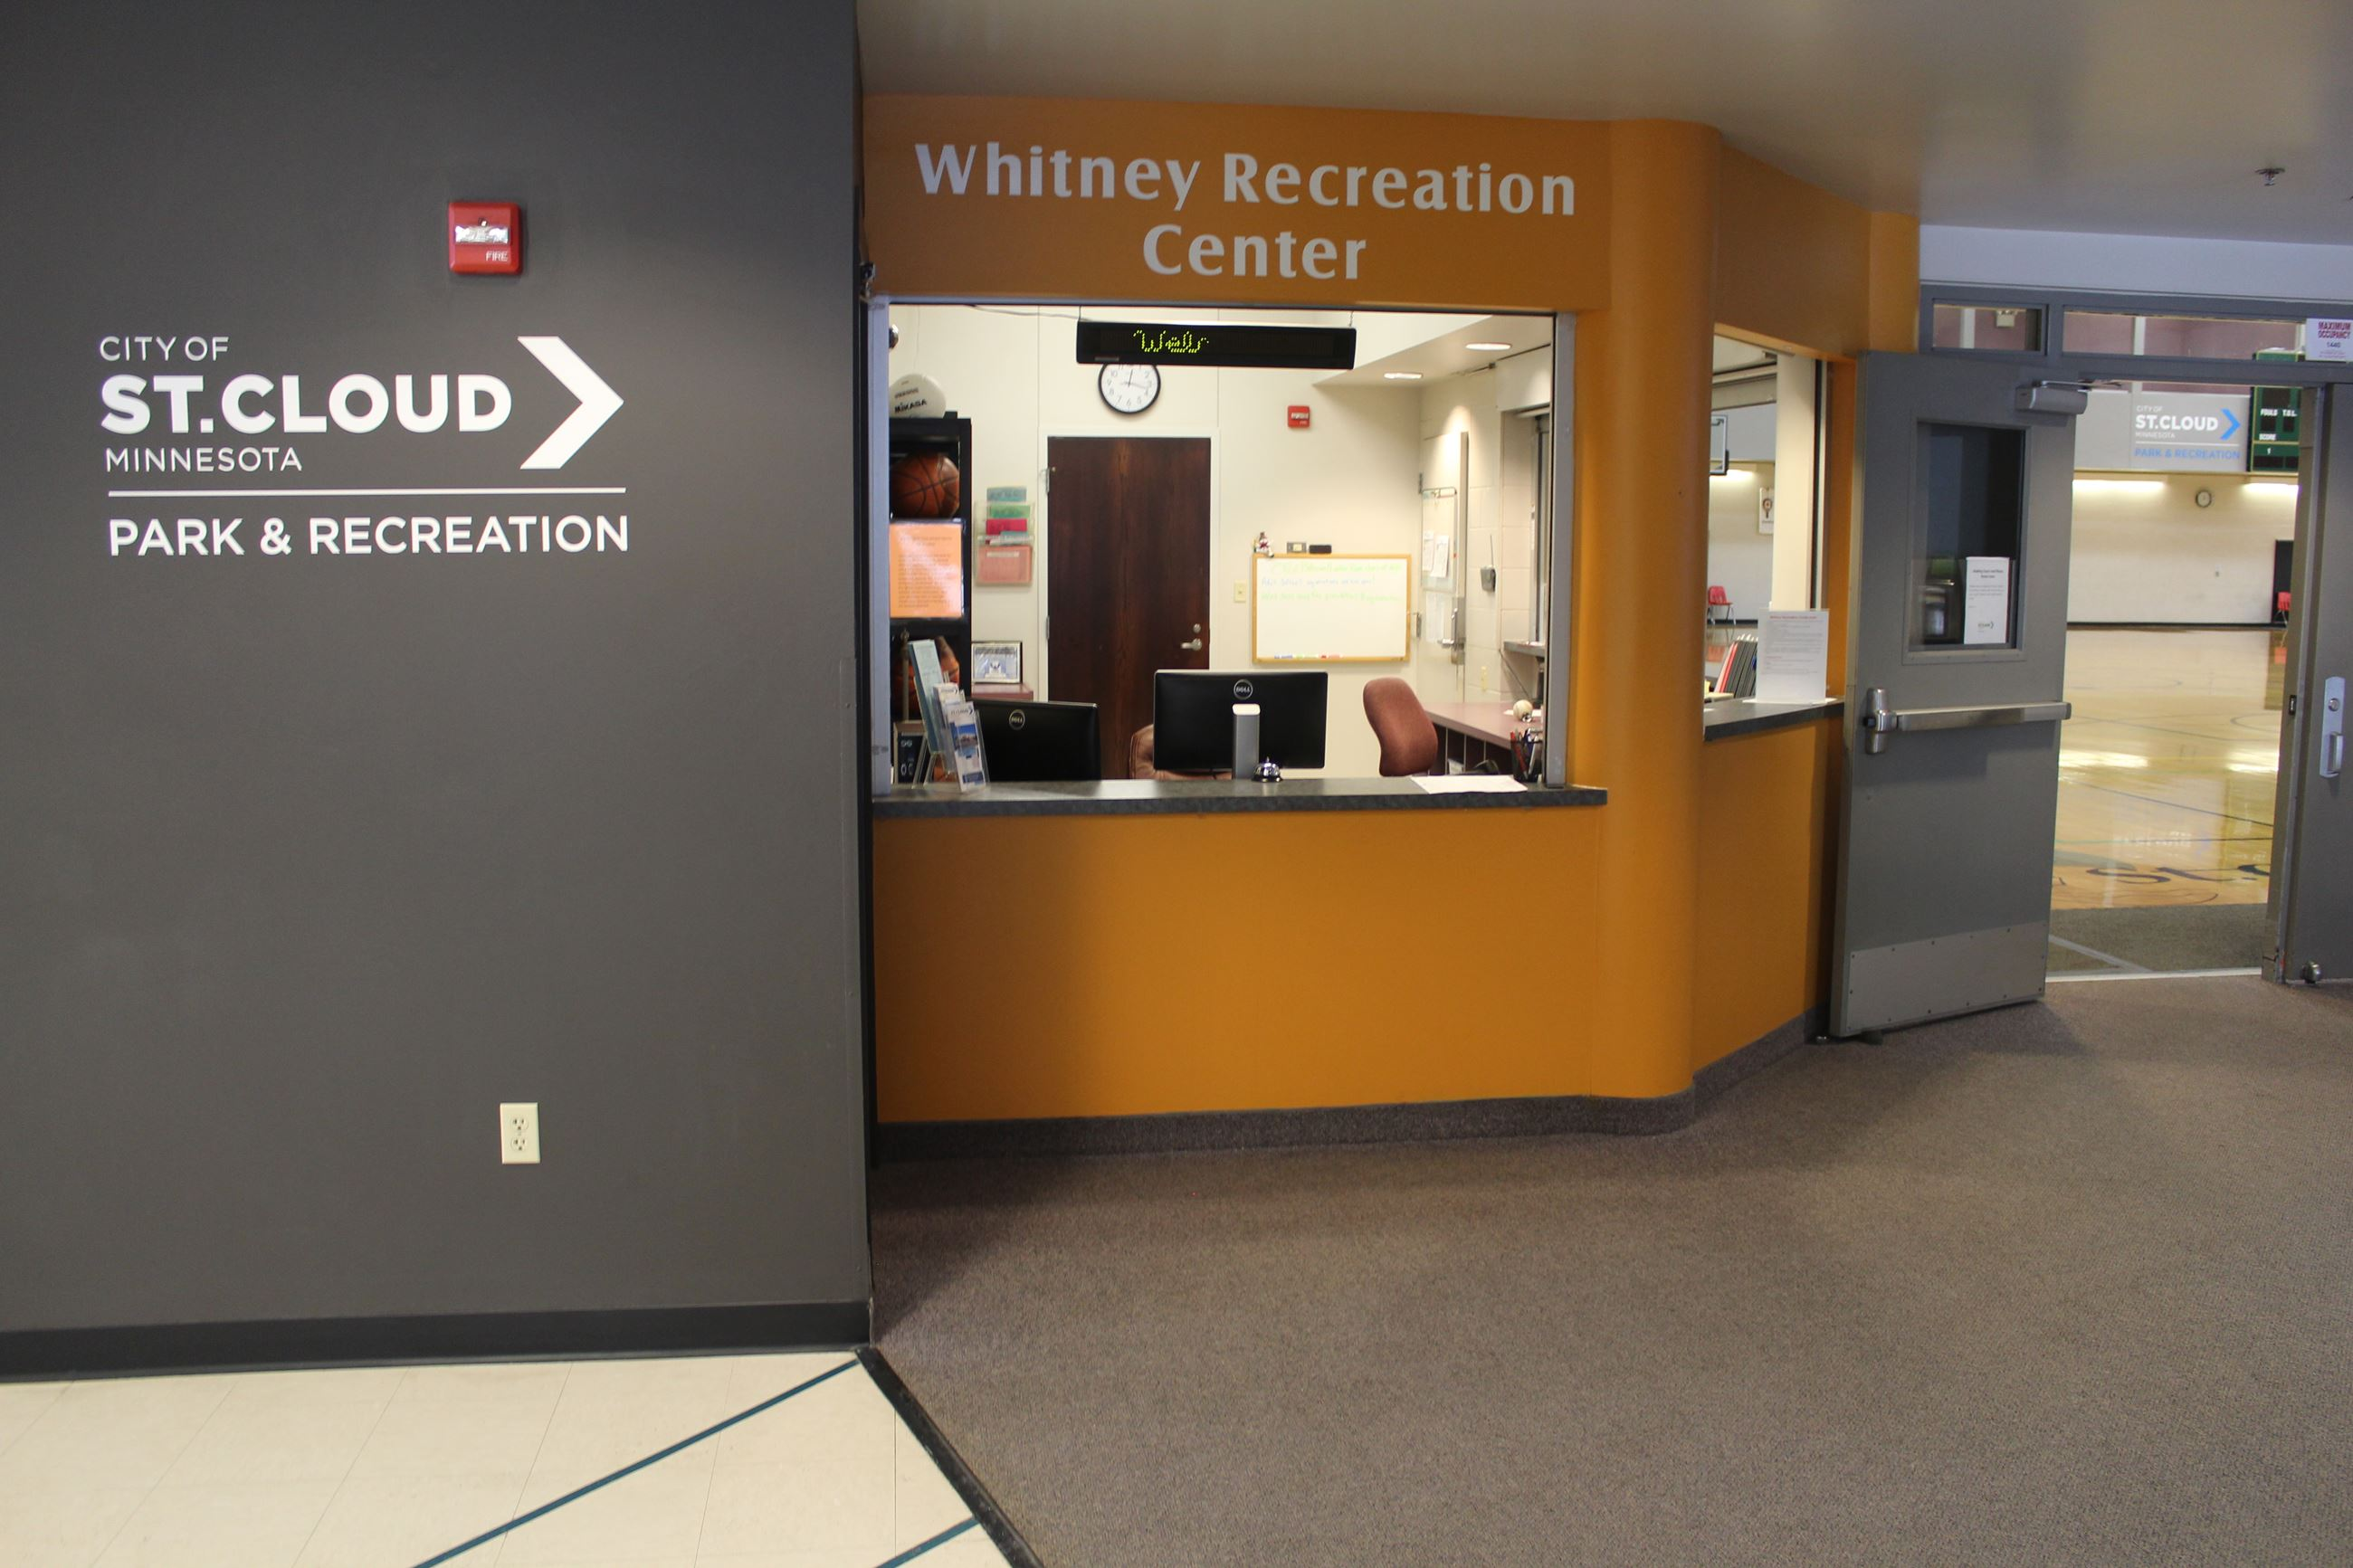 Photo shows the Whitney Recreation Gym Office window, just to the right of the City's logo